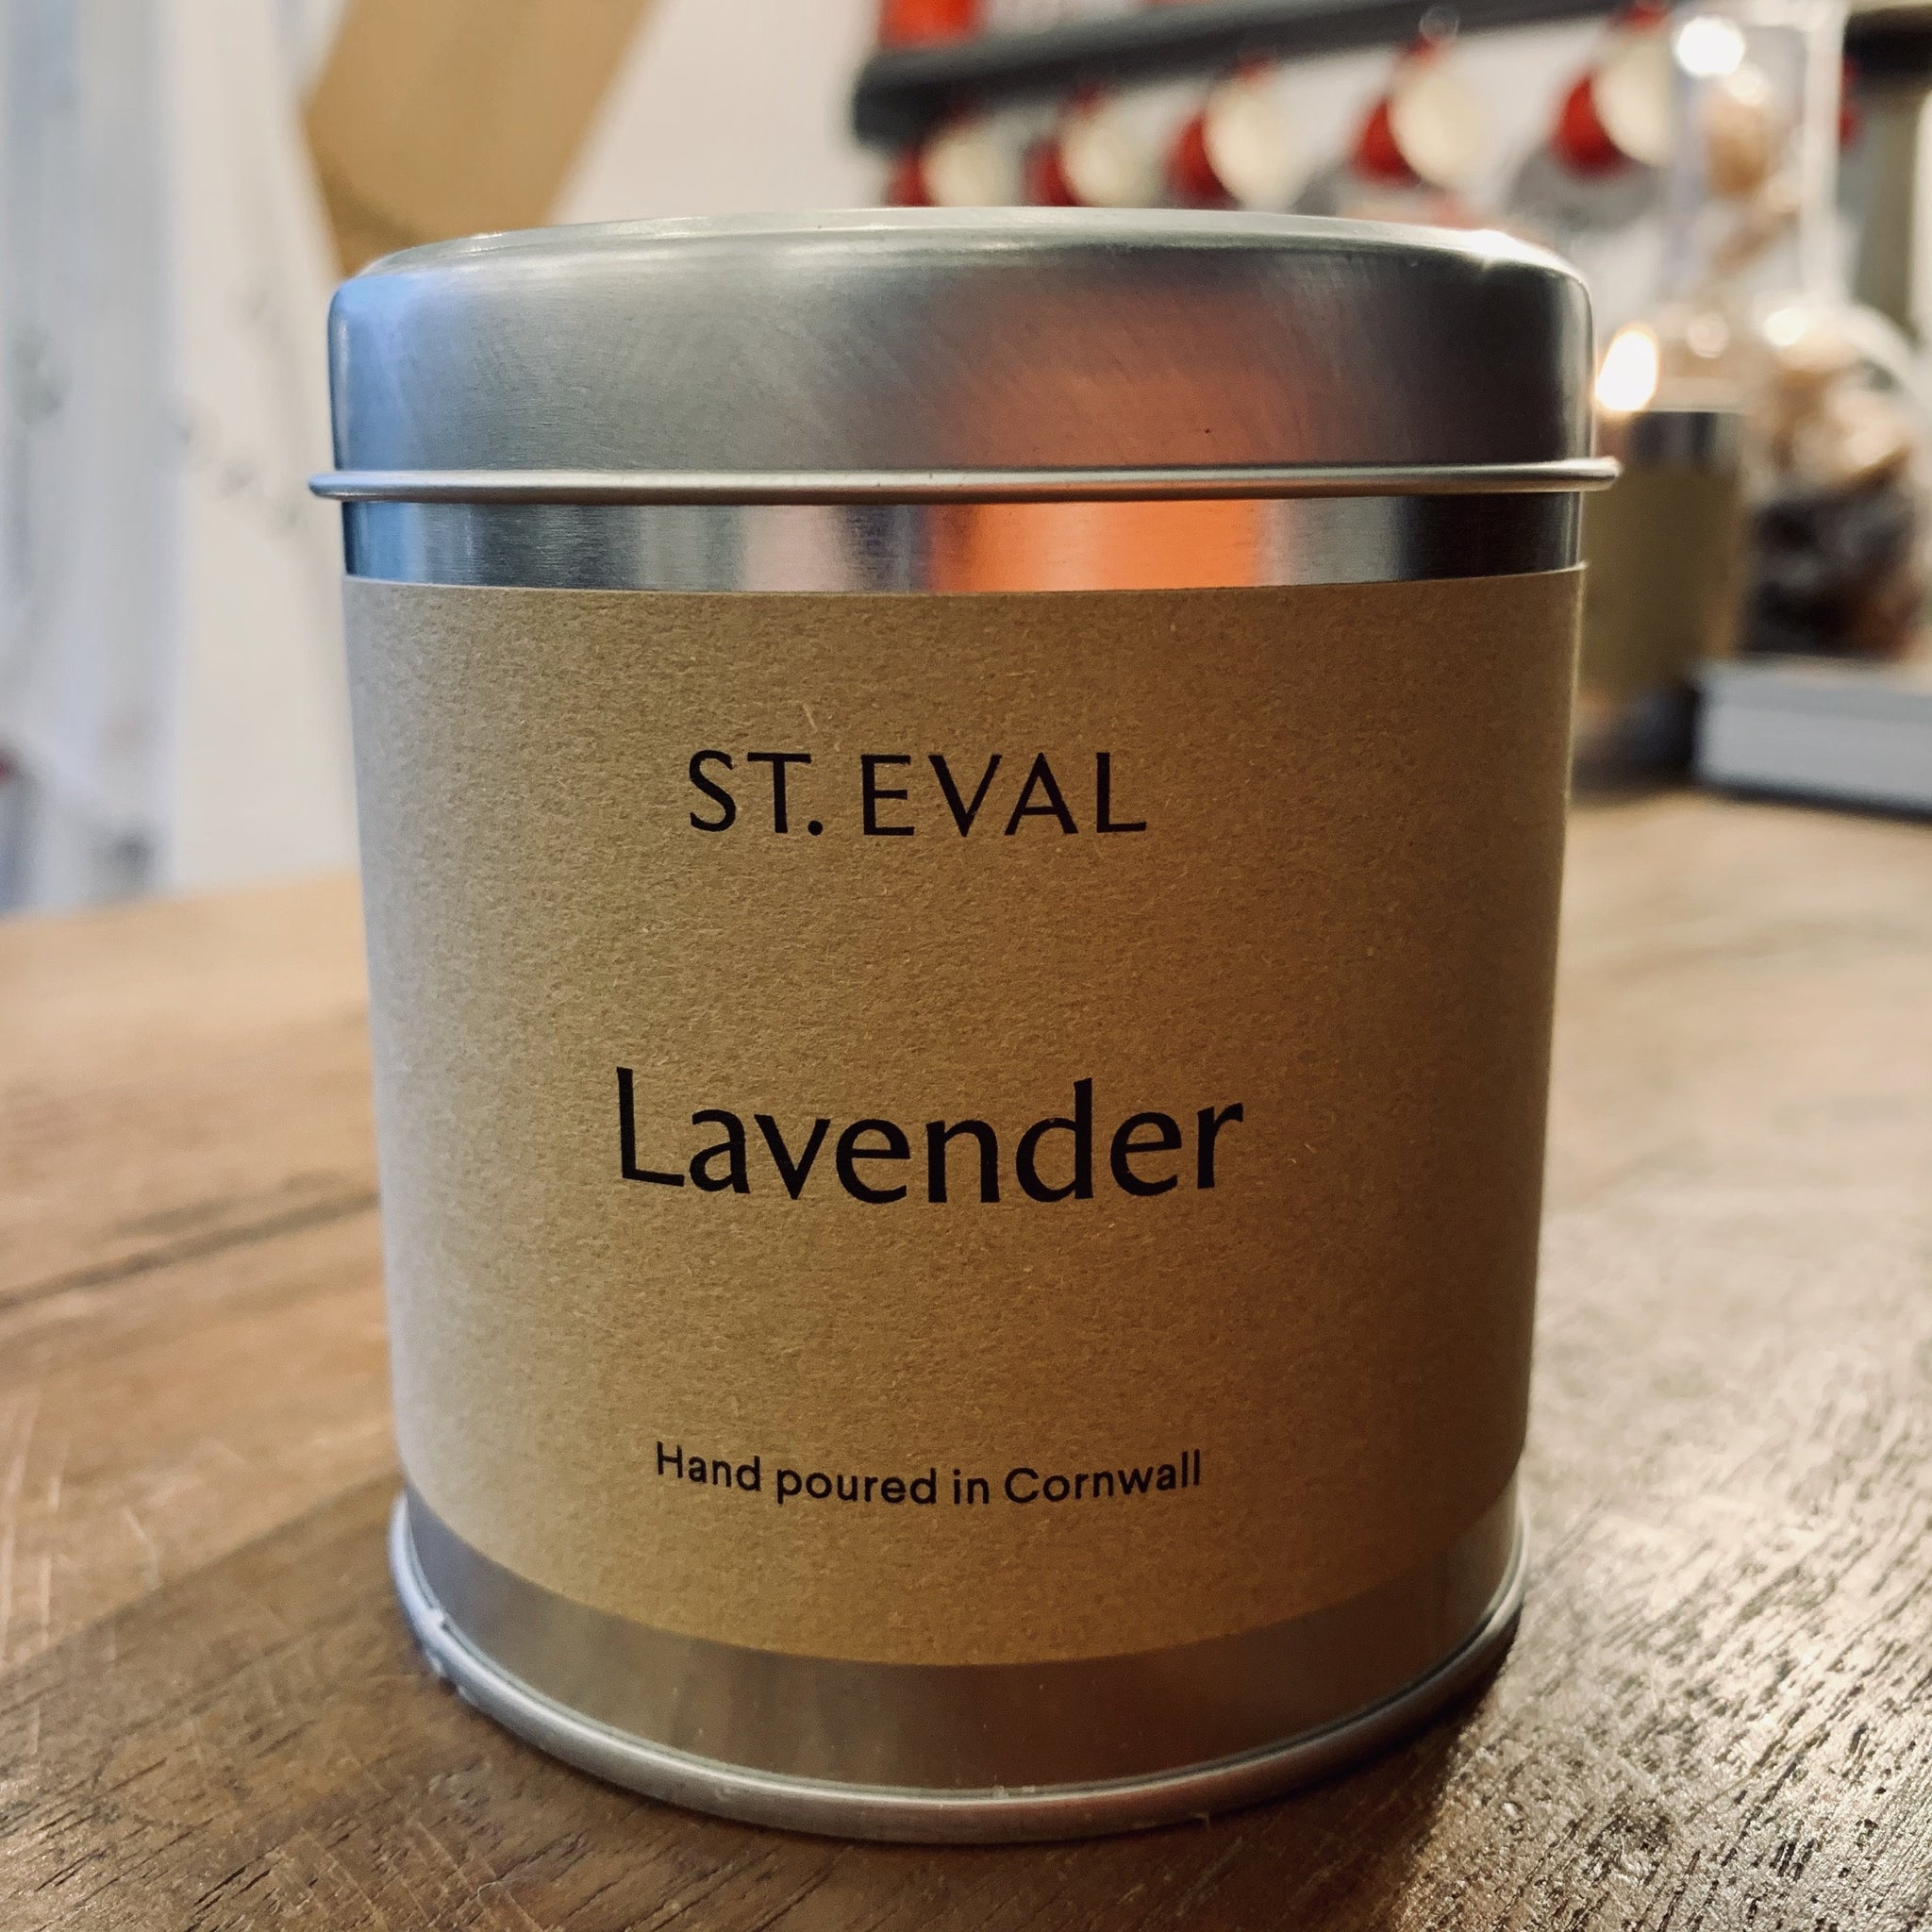 St. Eval Scented Candle Tin: Lavender - mylesfromhome.co.uk